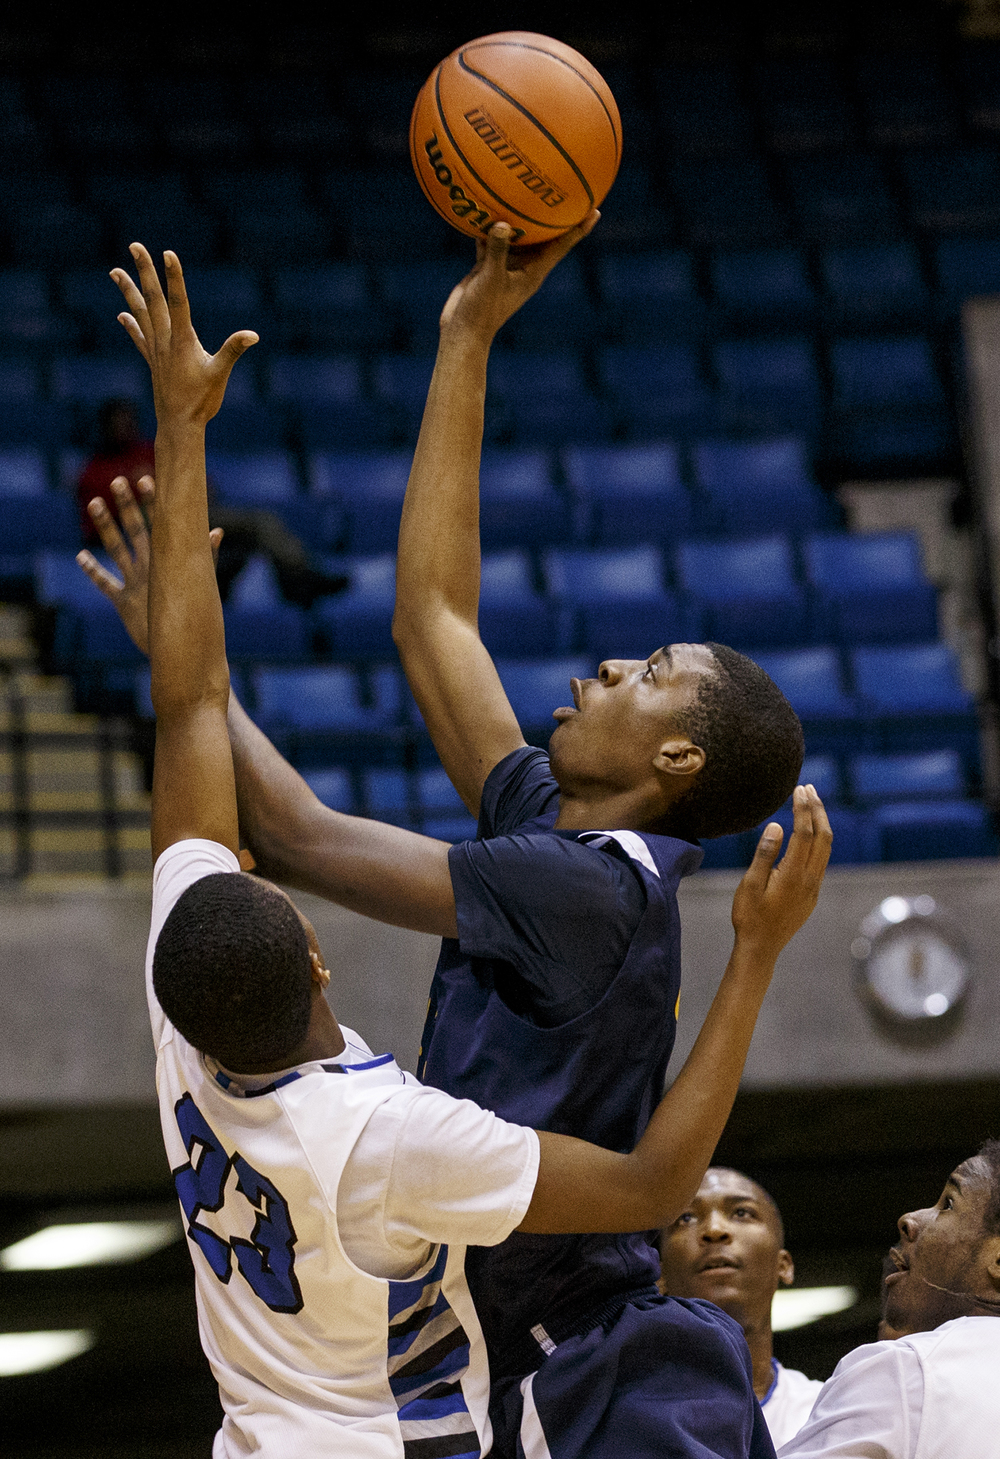 Southeast's Darius Ousley puts up a shot against Decatur MacArthur during the Capital City Showcase Saturday at the Prairie Capital Convention Center Saturday, Dec. 6, 2014. Ted Schurter/The State Journal-Register